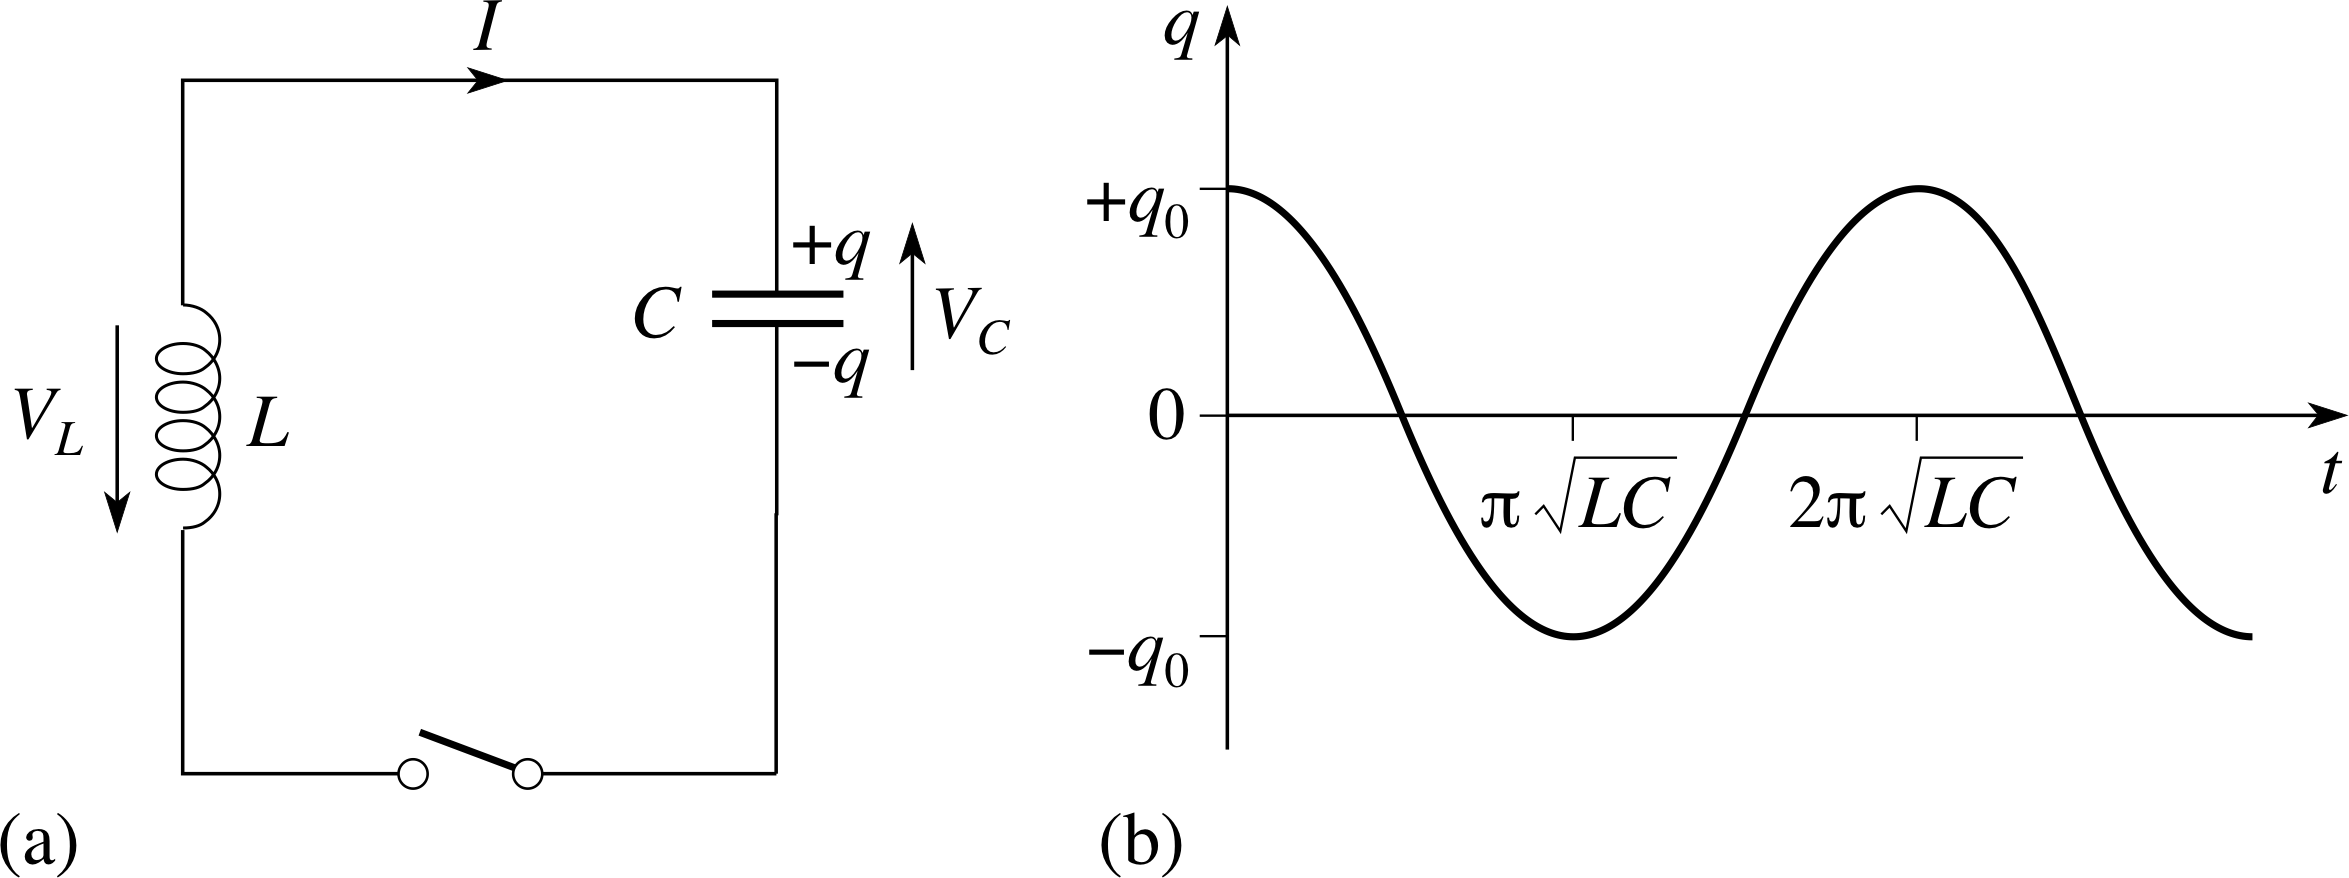 Pplato Flap Phys 54 Ac Circuits And Electrical Oscillations Figure 3 Parallel Rlc Circuit 33 In Lc